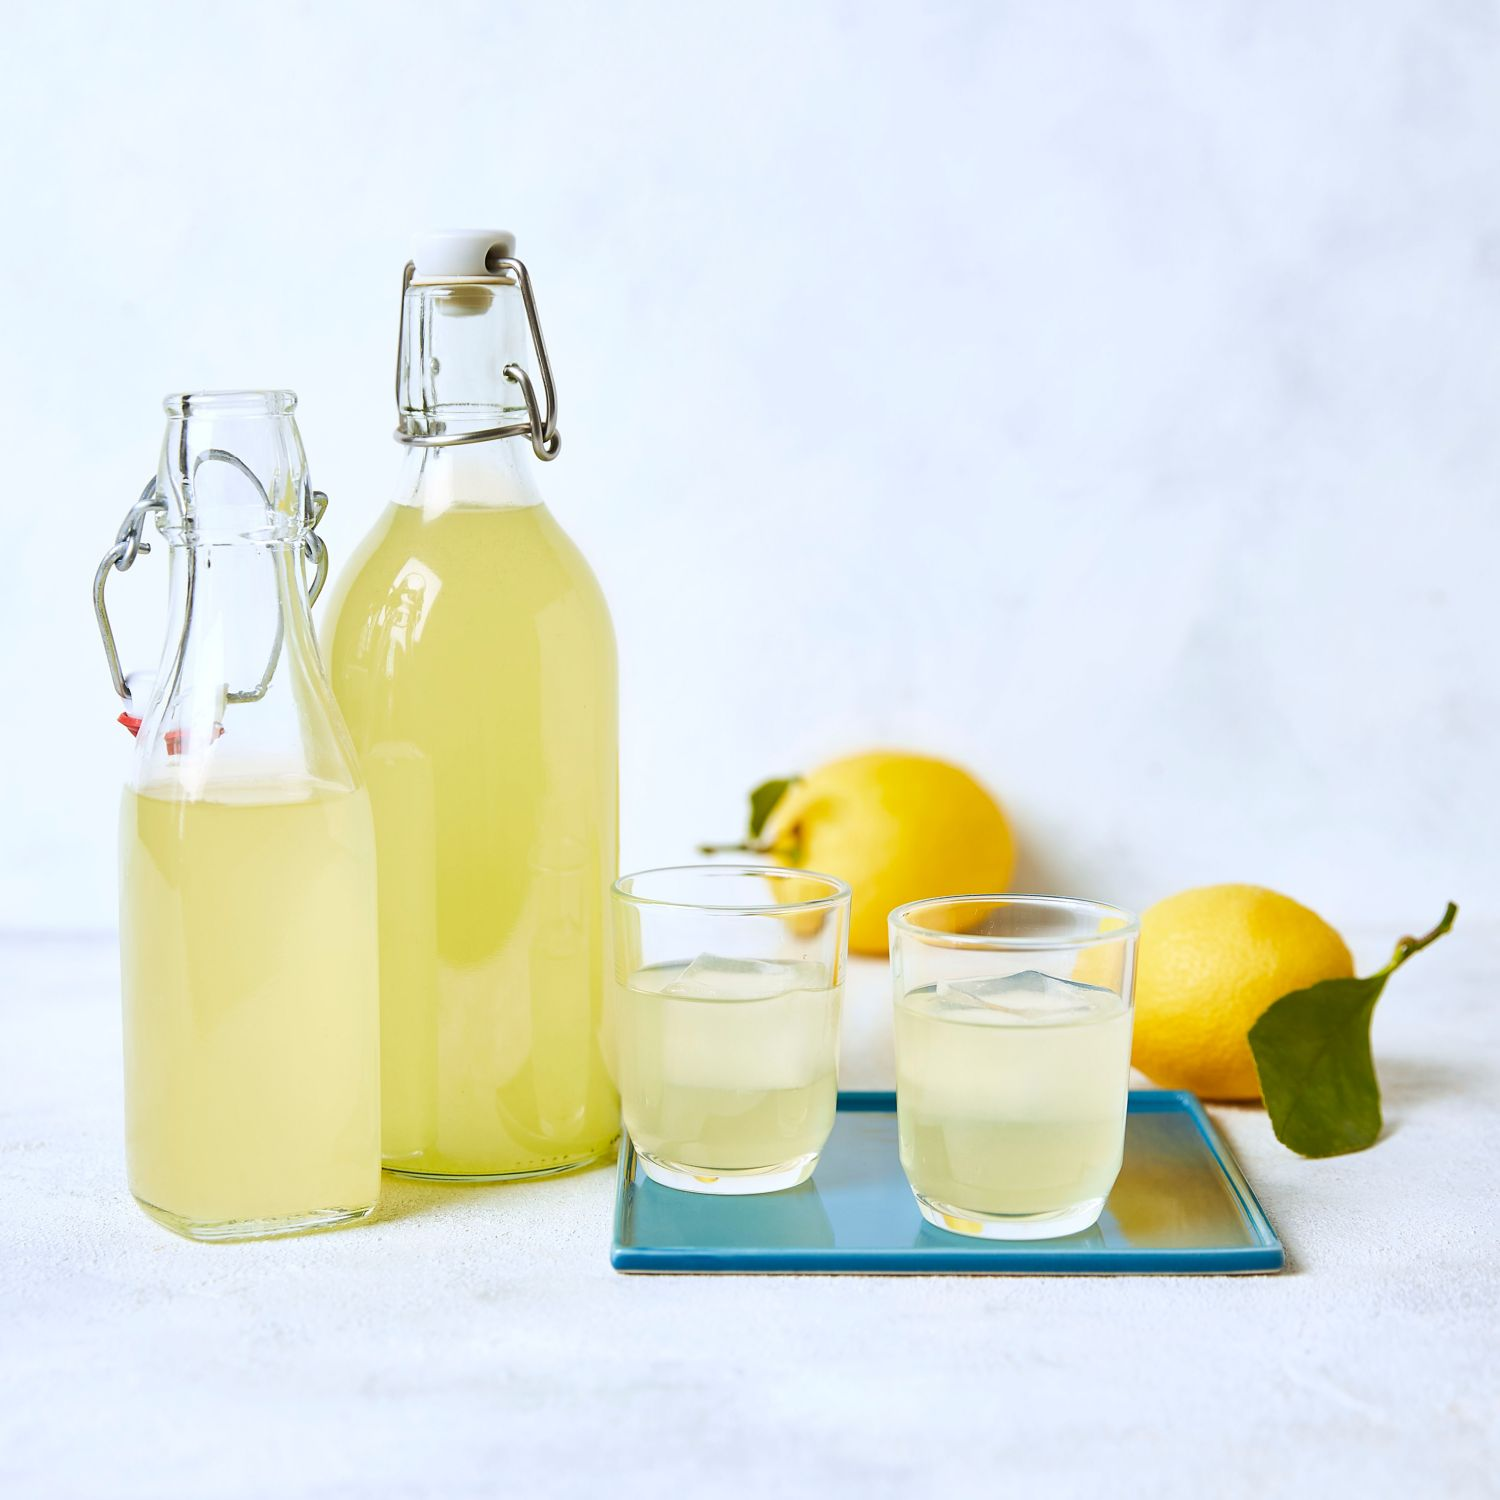 Selbstgemachter Limoncello